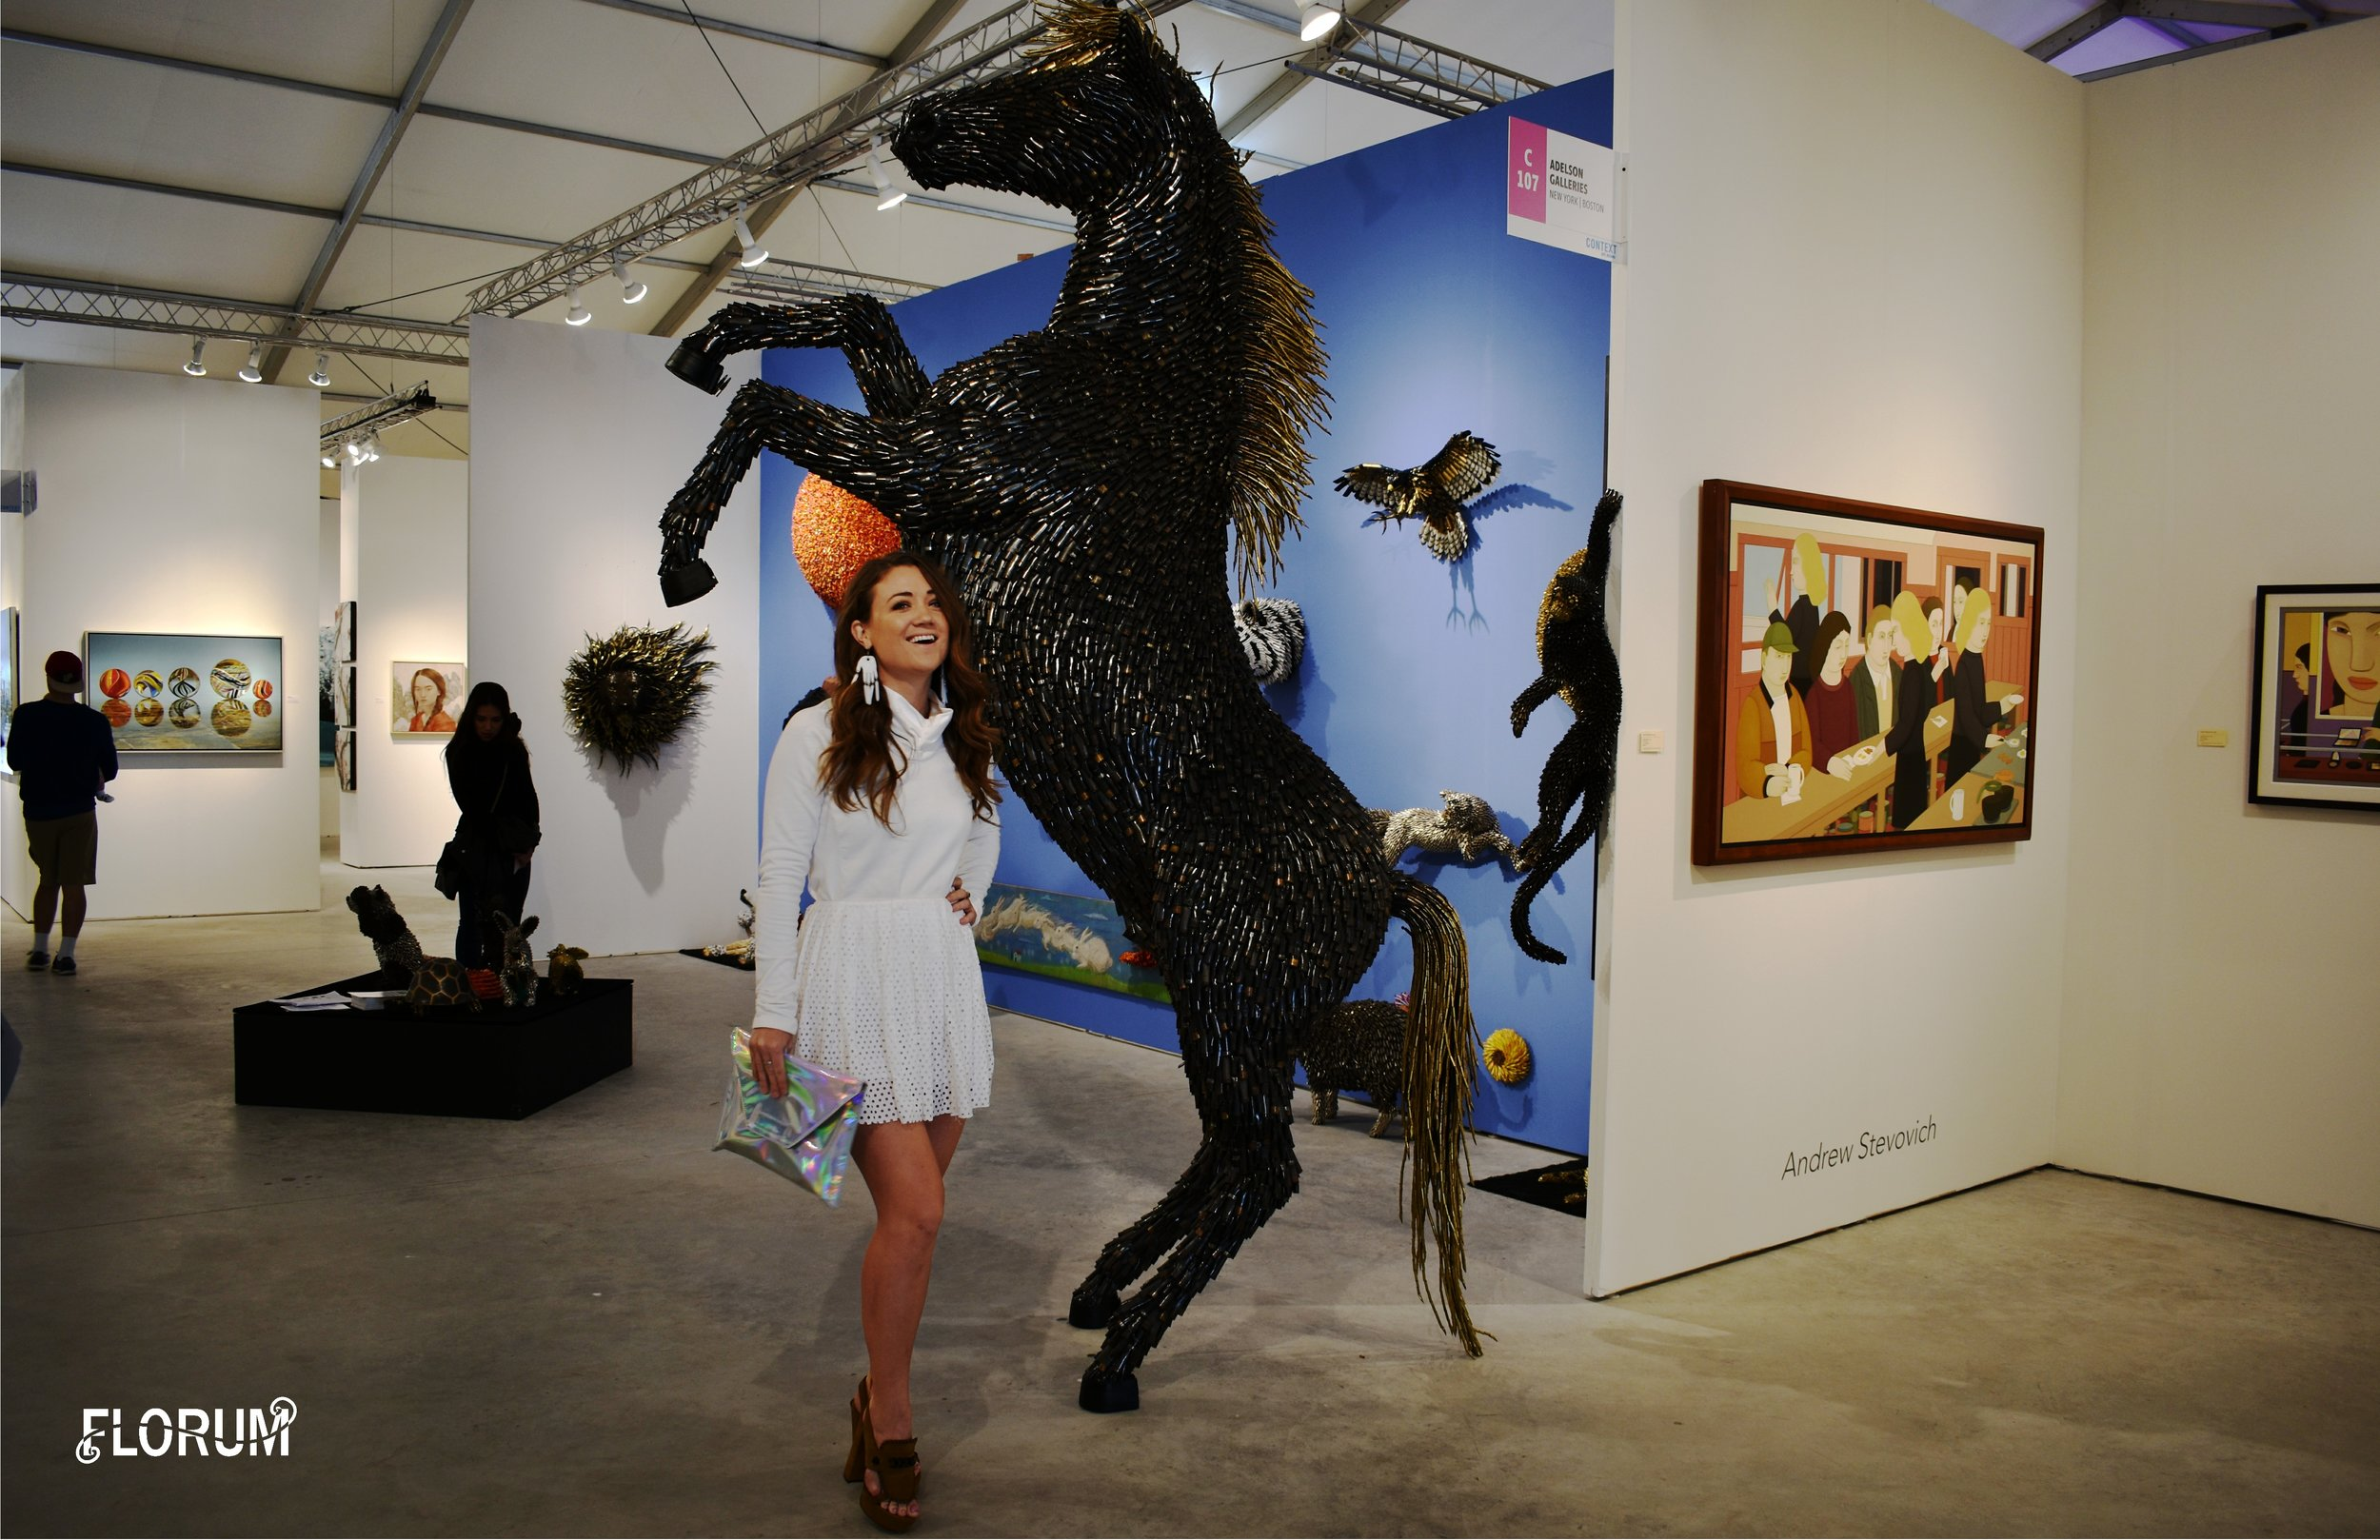 ART Miami 2017  'Horse' by Colombian artist Federico Uribe that was designed in 2016  and entirely made of bullet shells.  Noelle Lynne wearing a white sweater by ethical Canadian brand  Fig Clothing , skirt by  Alexander Mcqueen , thrifted clutch,  white finger frolics earrings by REDGREGOR that are made of upcycled plexiglas , and  sustainable luxury shoes by Viktor & Rolf from online consignment shop the Real Real (Click  HERE  to get $25 off your first purchase on The Real Real)